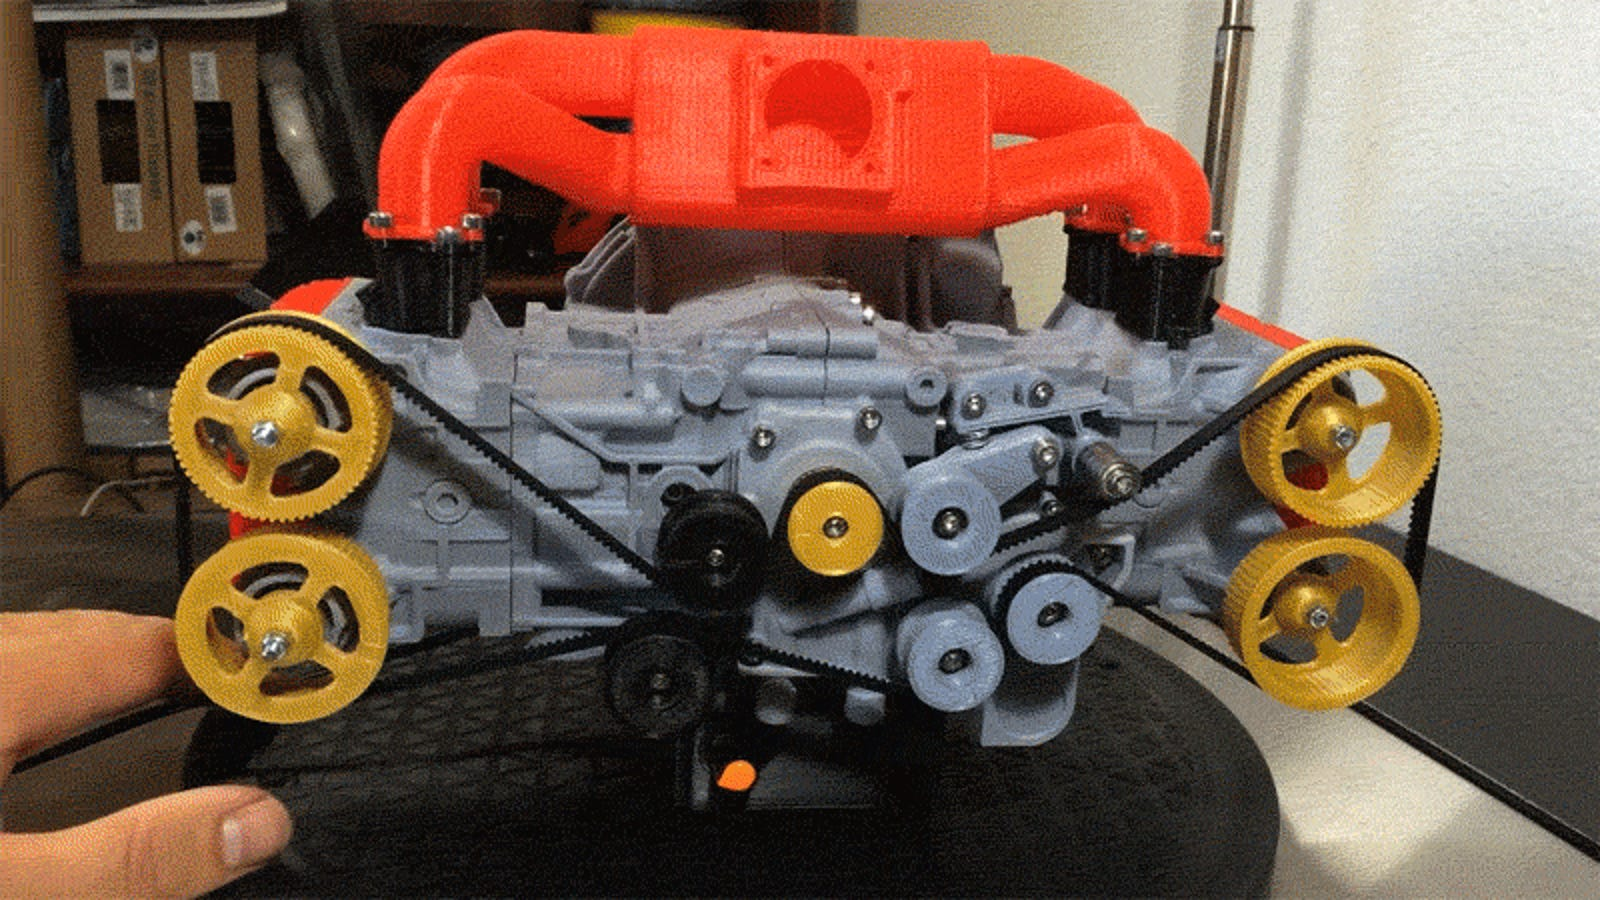 Build Your Own Subaru >> This 3D Printed Subaru Flat-Four Engine Is Deeply Satisfying